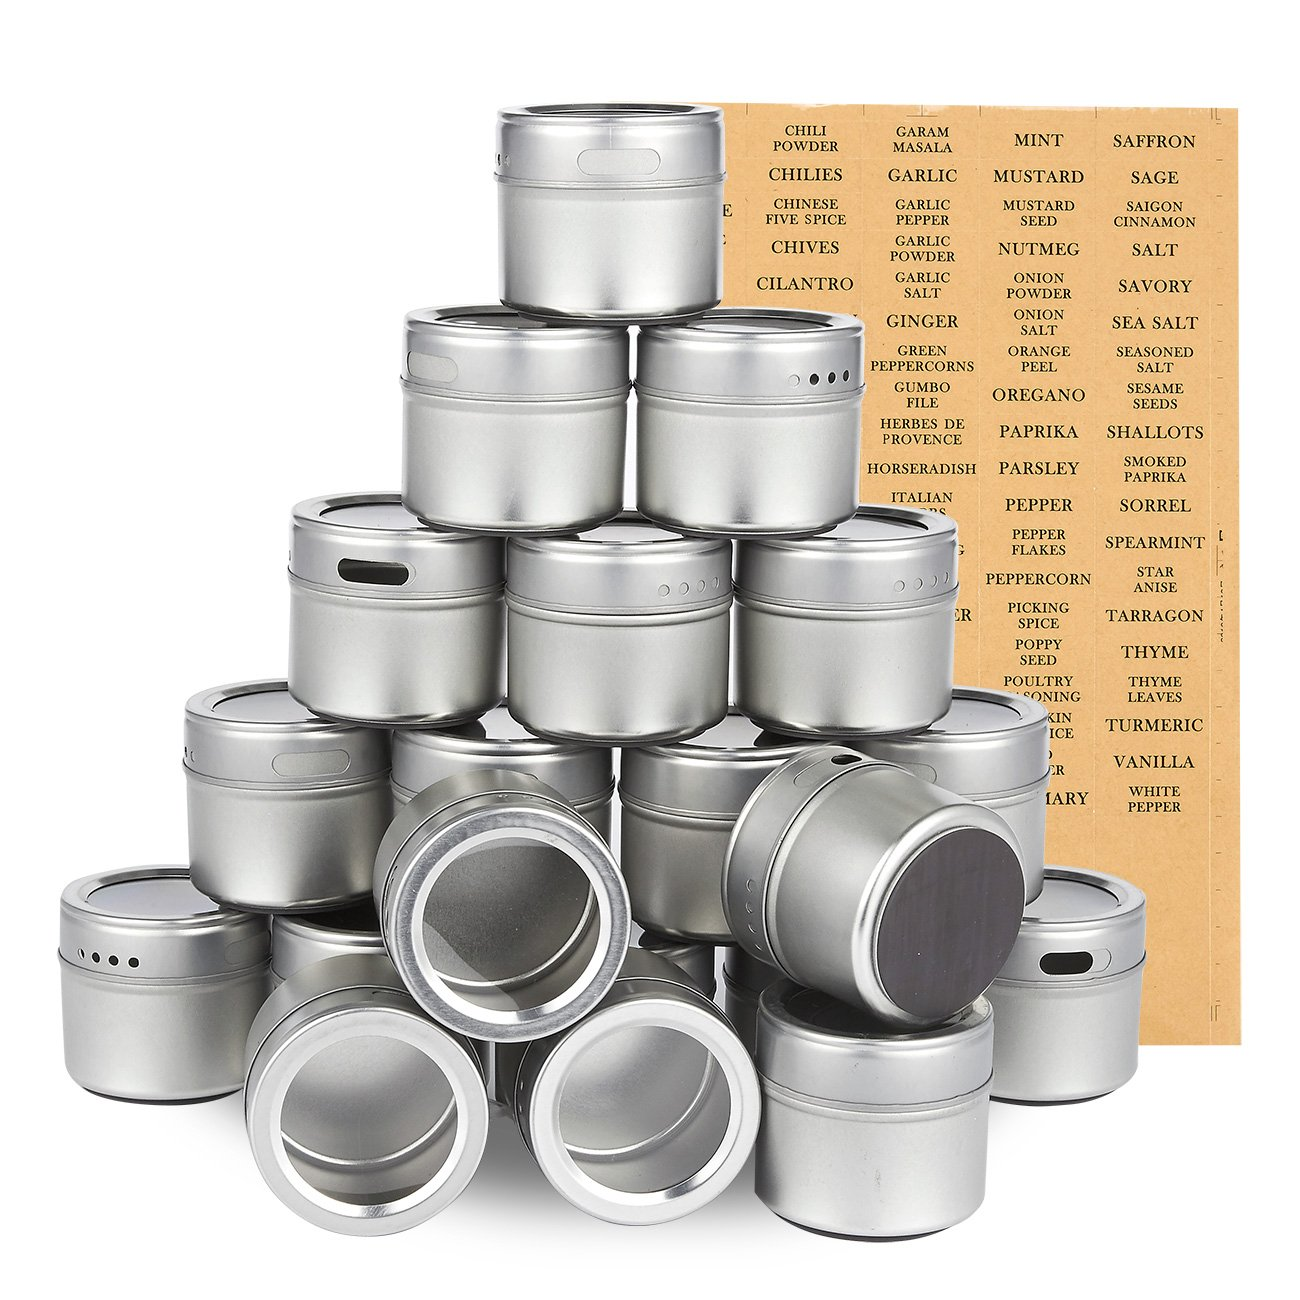 Juvale 20-Pack Magnetic Spice Containers - Storage Tins with Transparent Lids, Seasoning Organizers, Metal Spice Jars, Includes 94 Labelling Stickers - Holds 3.4 Oz by Juvale